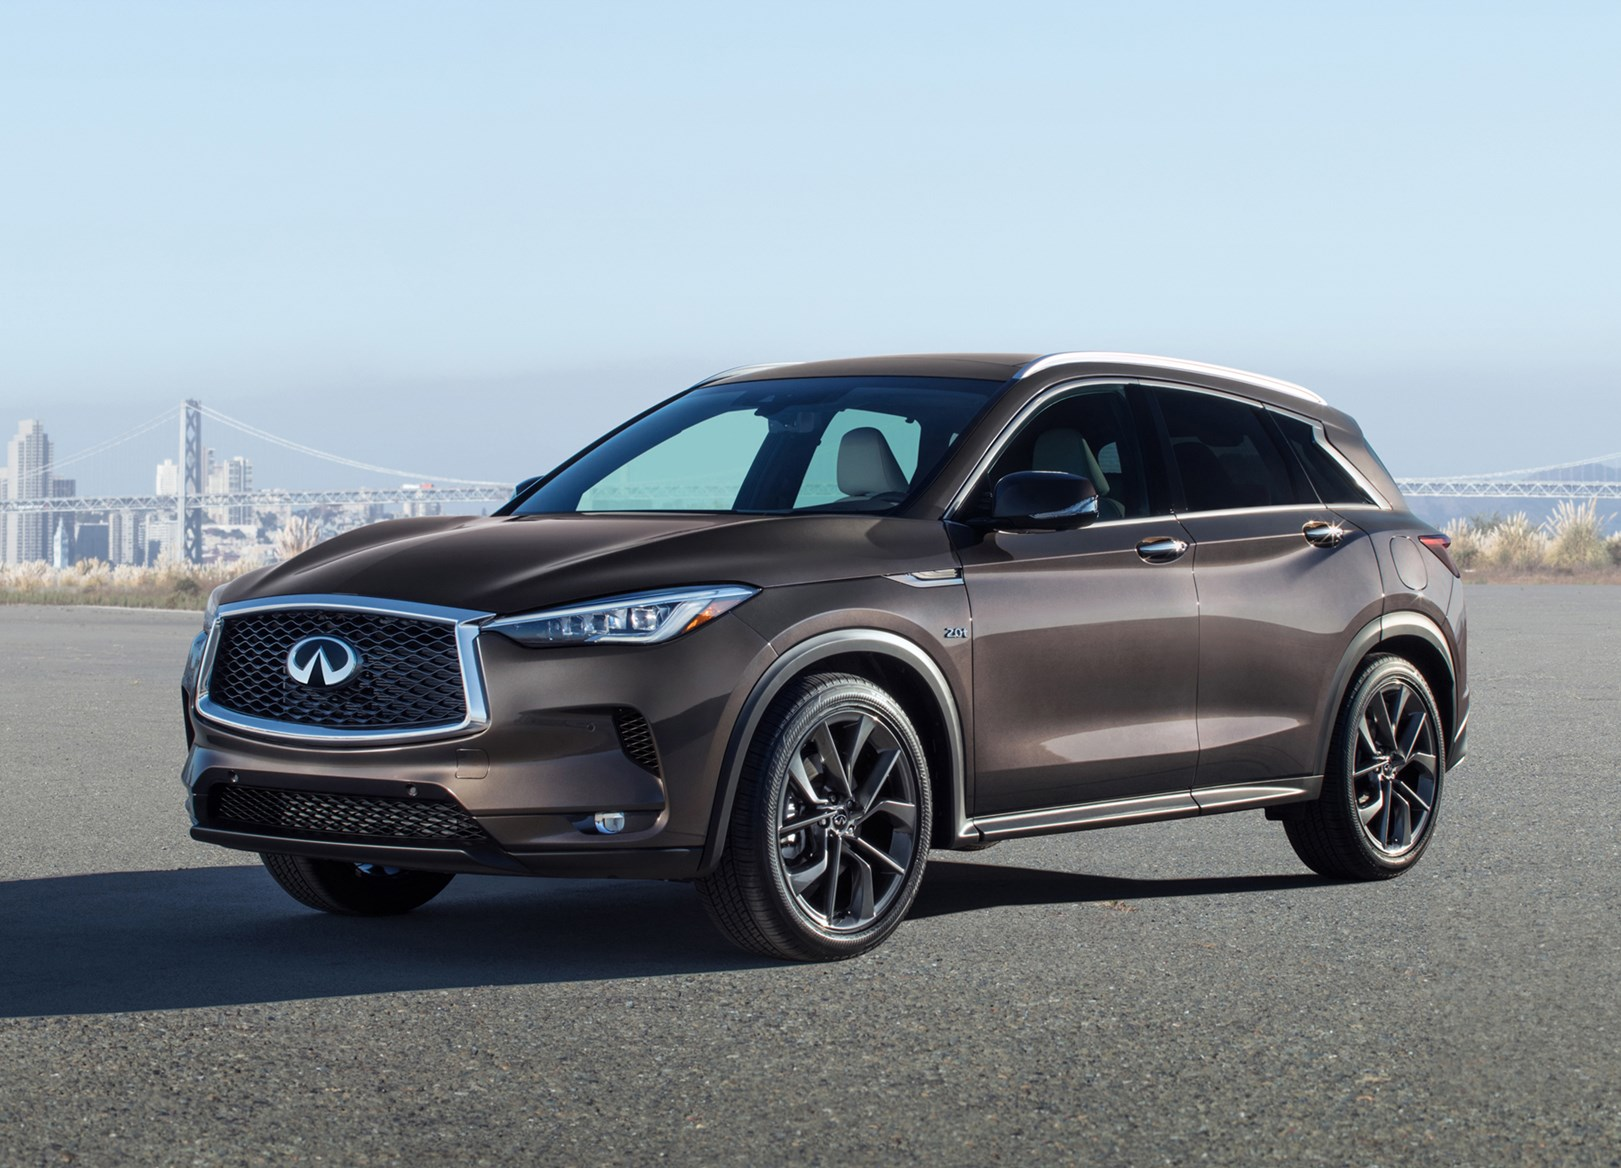 review first side infiniti front old view looking same cars but drive better motor